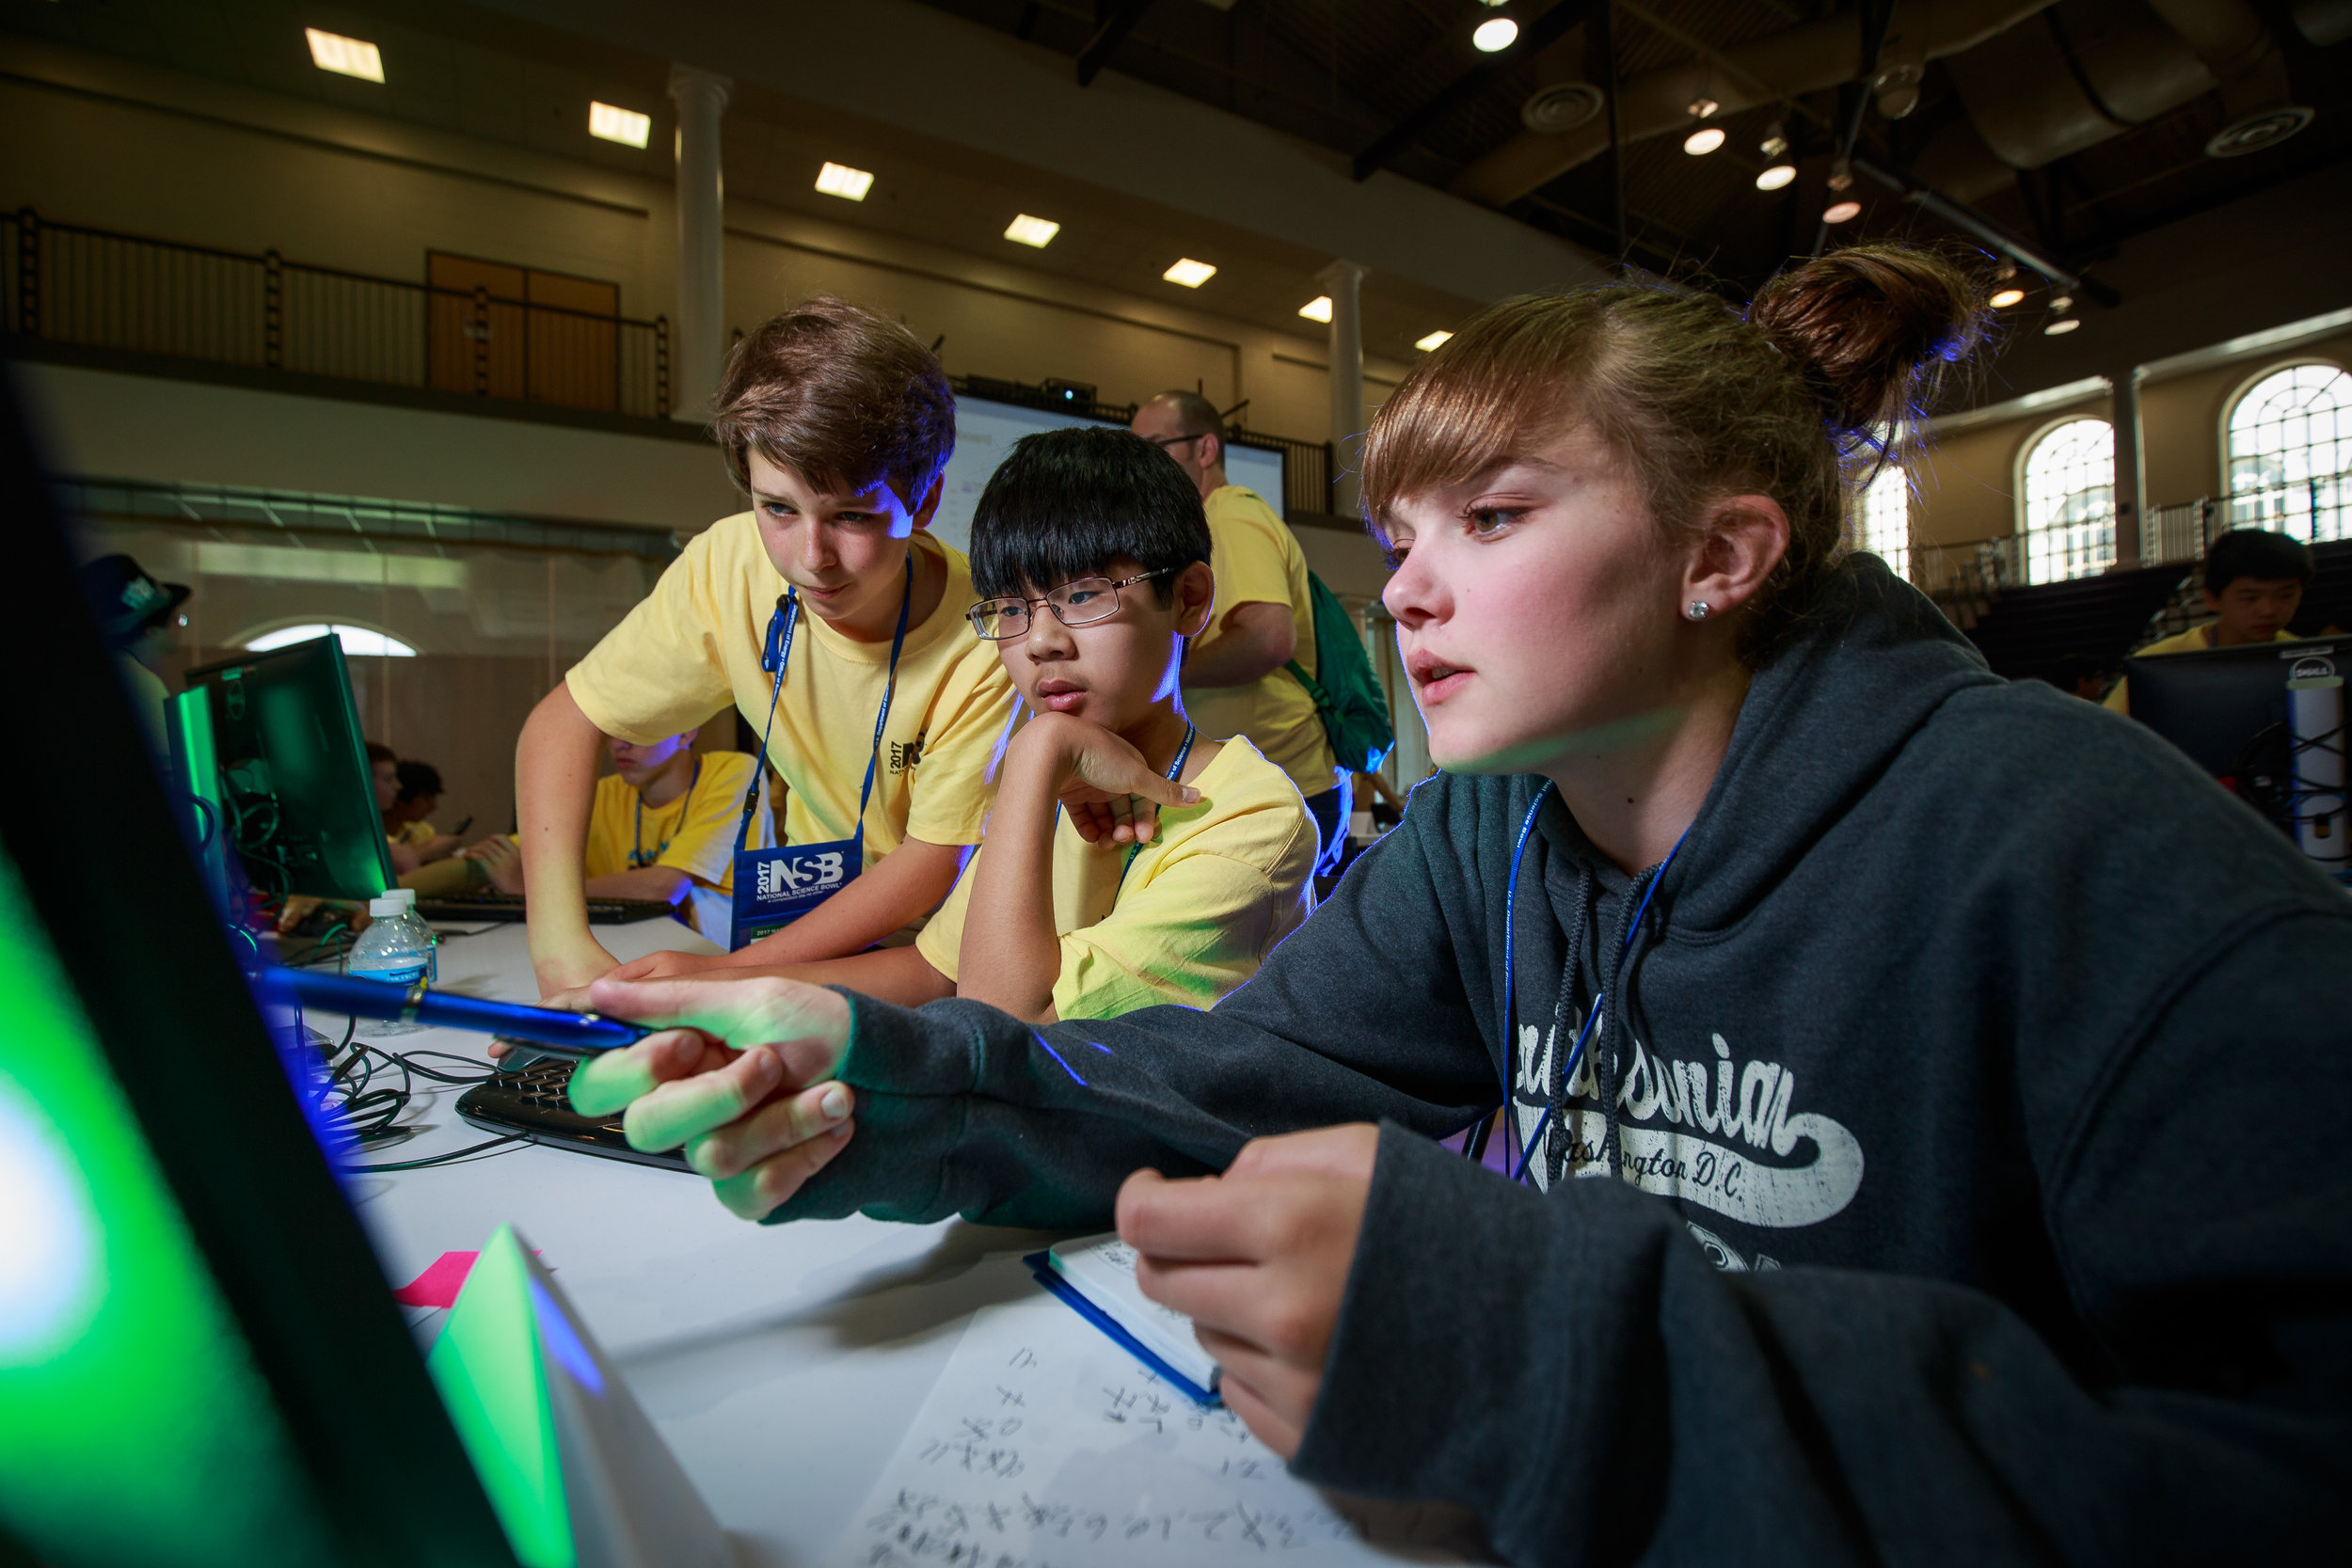 Math, Science, and Strategy - Students may participate in MathCounts, High School Science Bowl, Middle School Science Bowl, or Lego Robotics. Ridgeview also hosts successful Mock Trial teams and Chess programs.